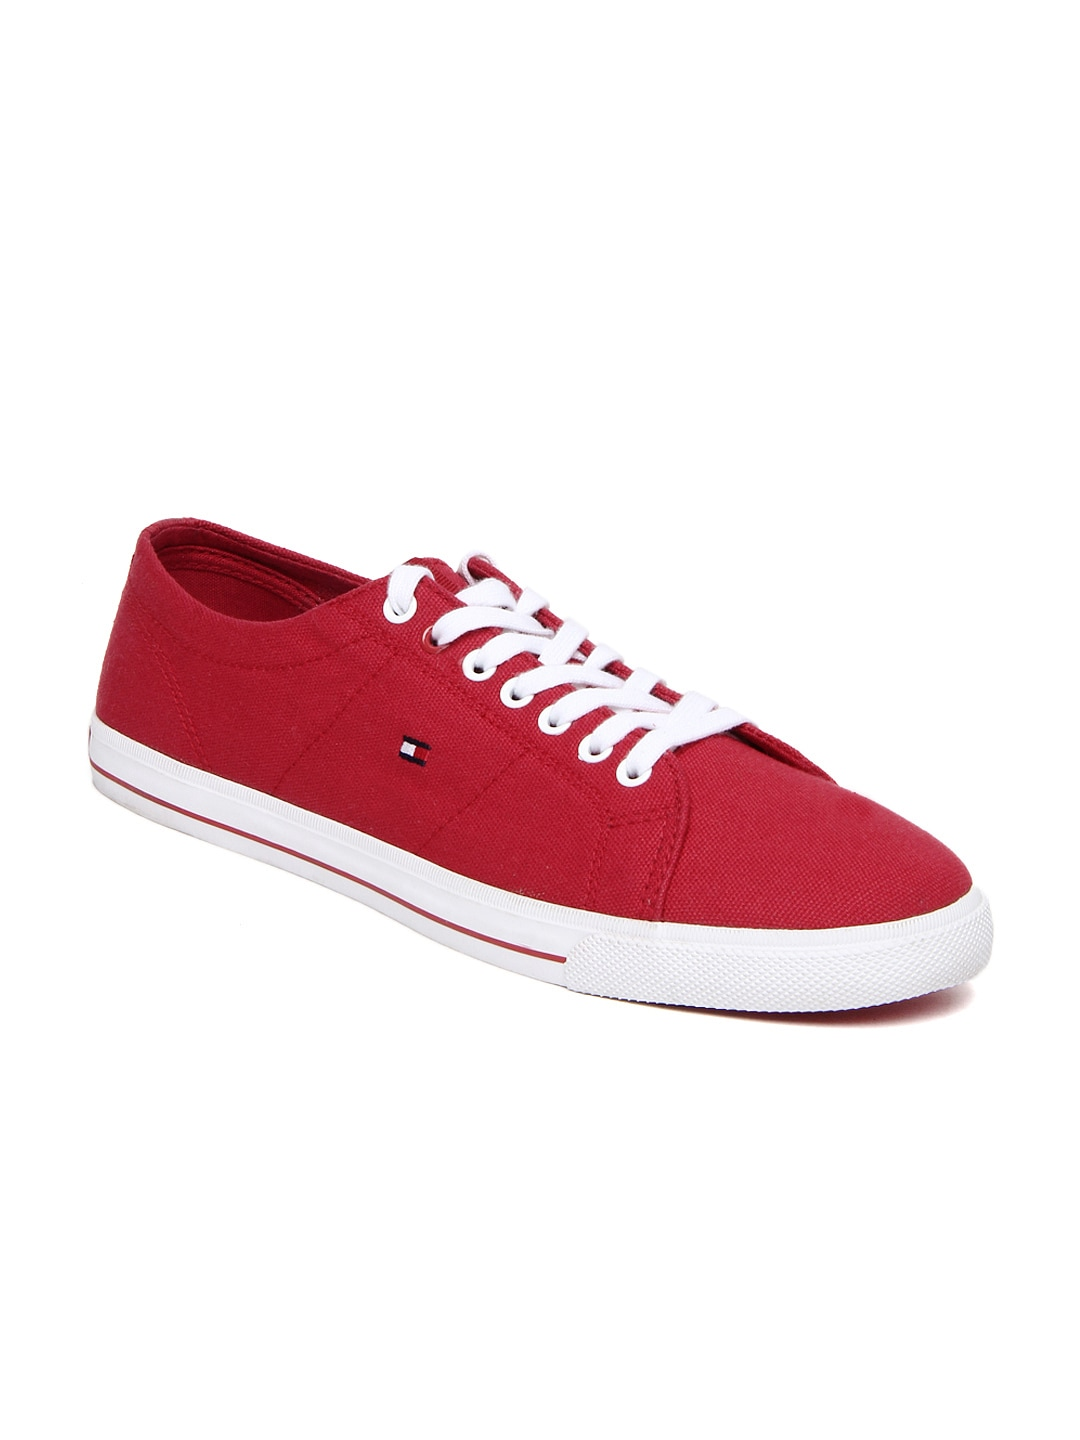 d6bd855db48664 Tommy hilfiger p3amf012 Men Red Casual Shoes - Best Price in India ...